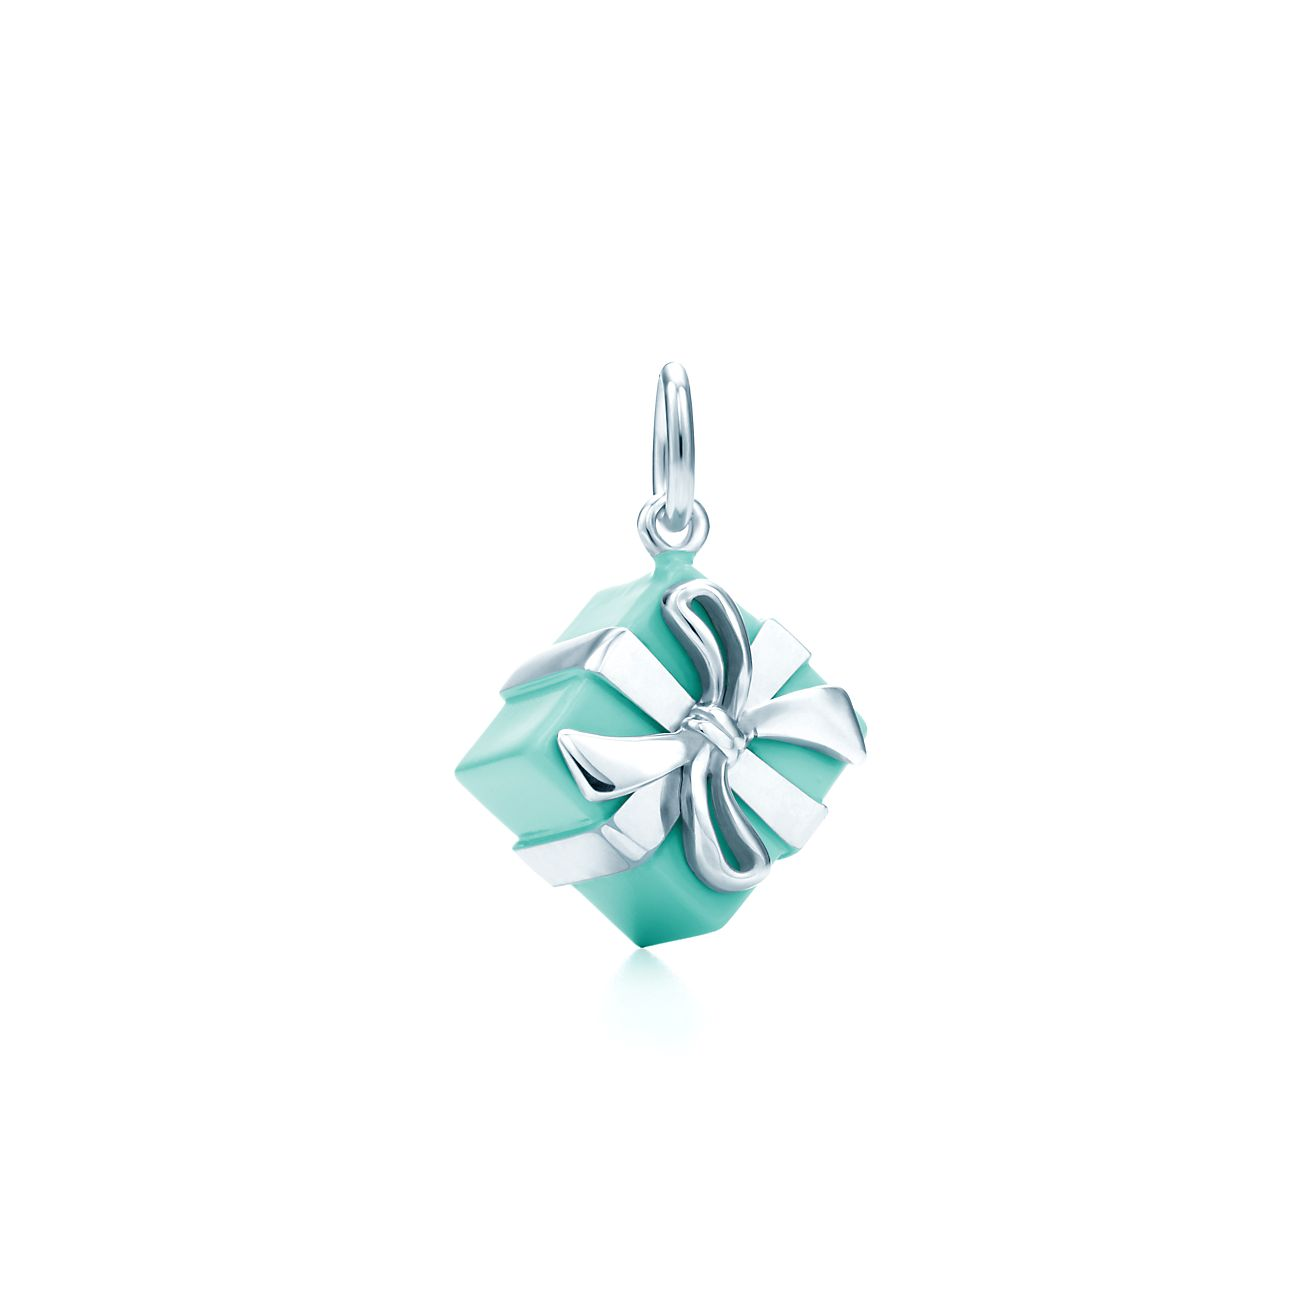 Tiffany Blue Box Charm In Sterling Silver With Tiffany